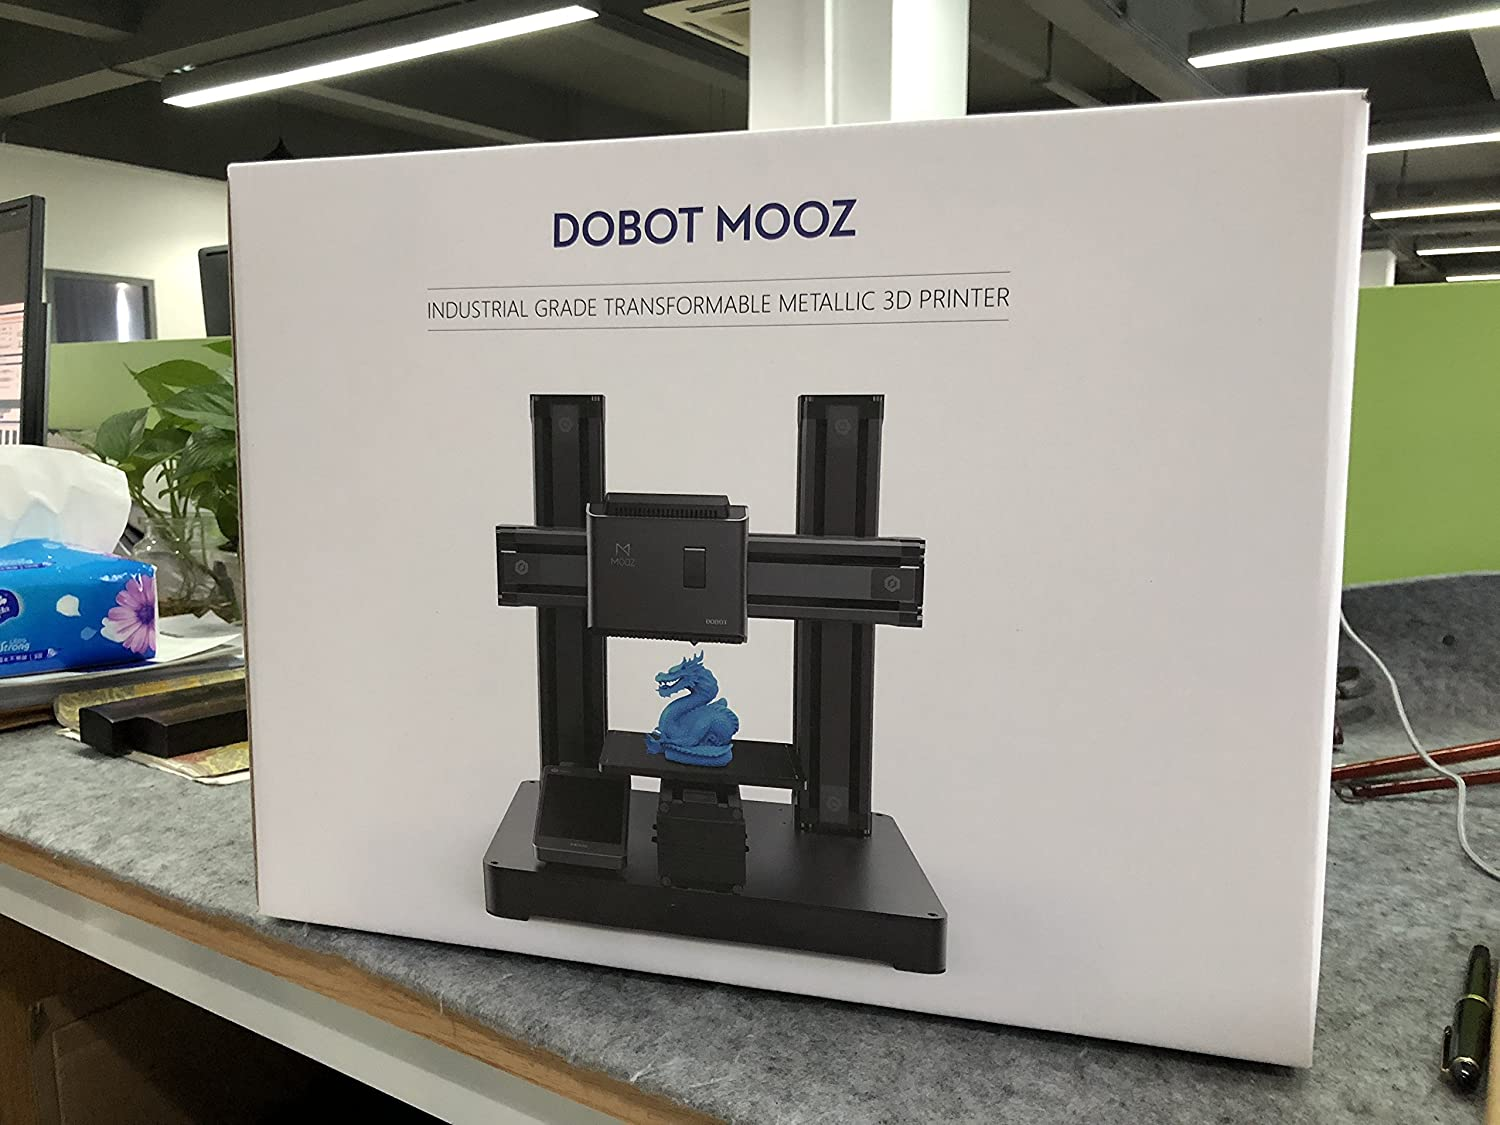 Dobot DB-MZ003 Mooz-2Z - Industrial Grade Transformable Metallic 3D Printer (Two Single Z-Axis)